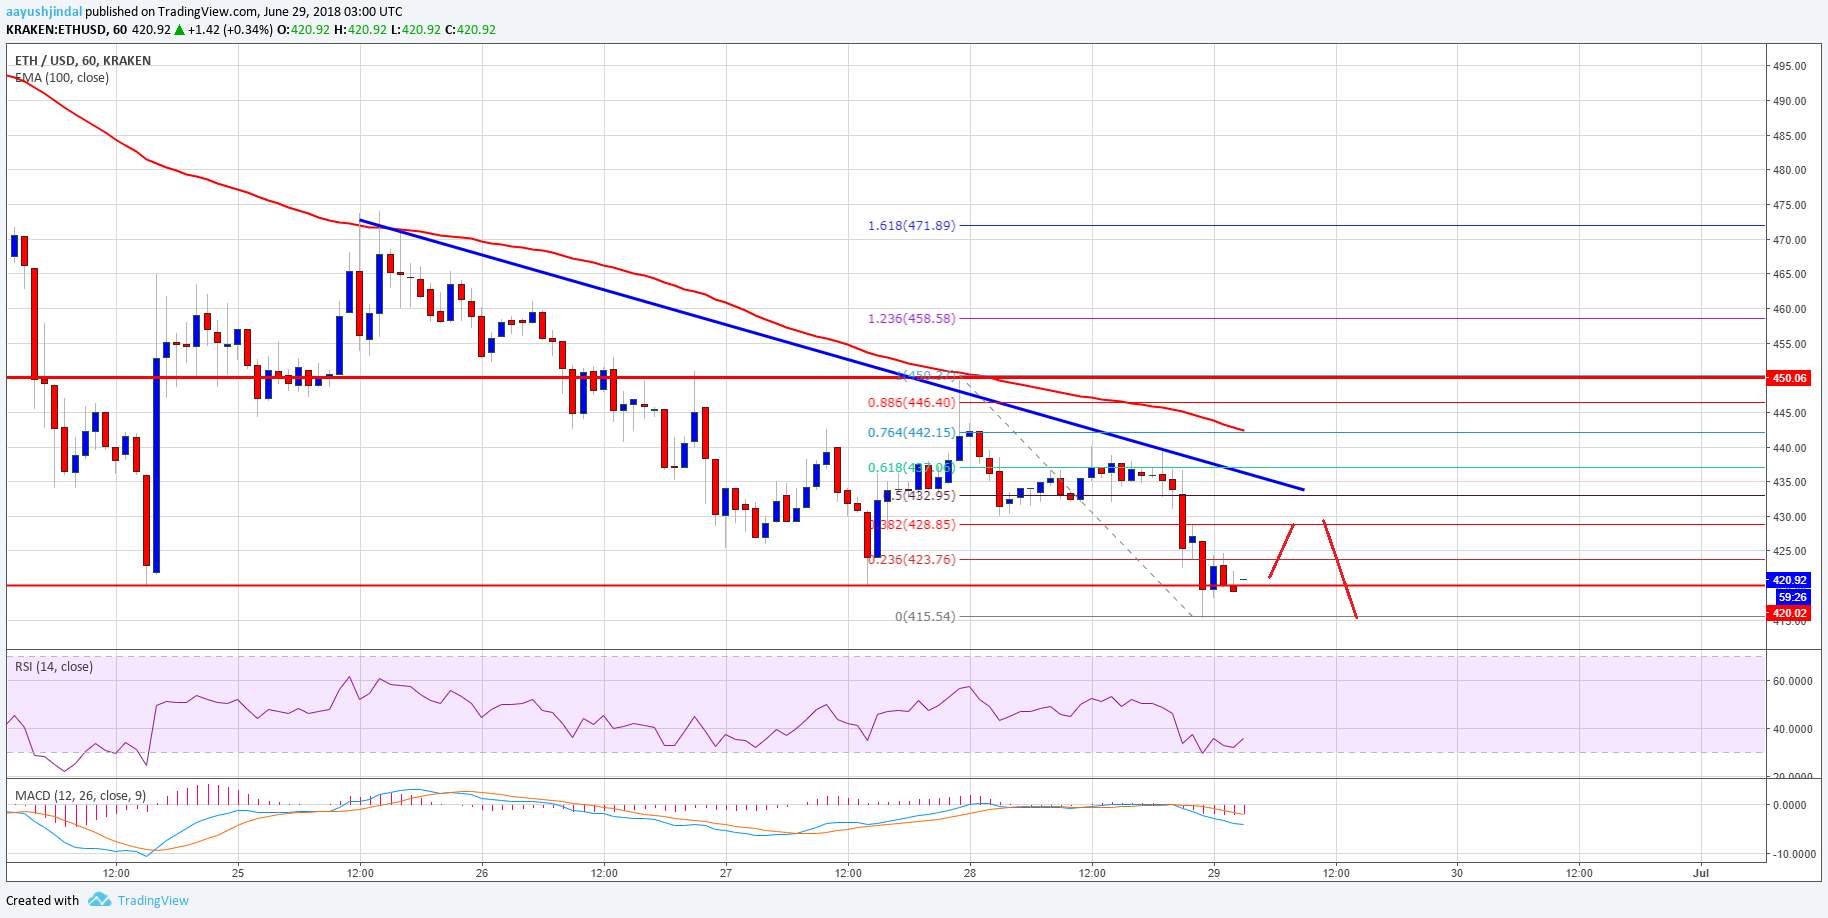 Litecoin Trend Chart >> Ethereum Price Analysis: ETH/USD Could Decline Further - Inside Bitcoins - News, Price, Events